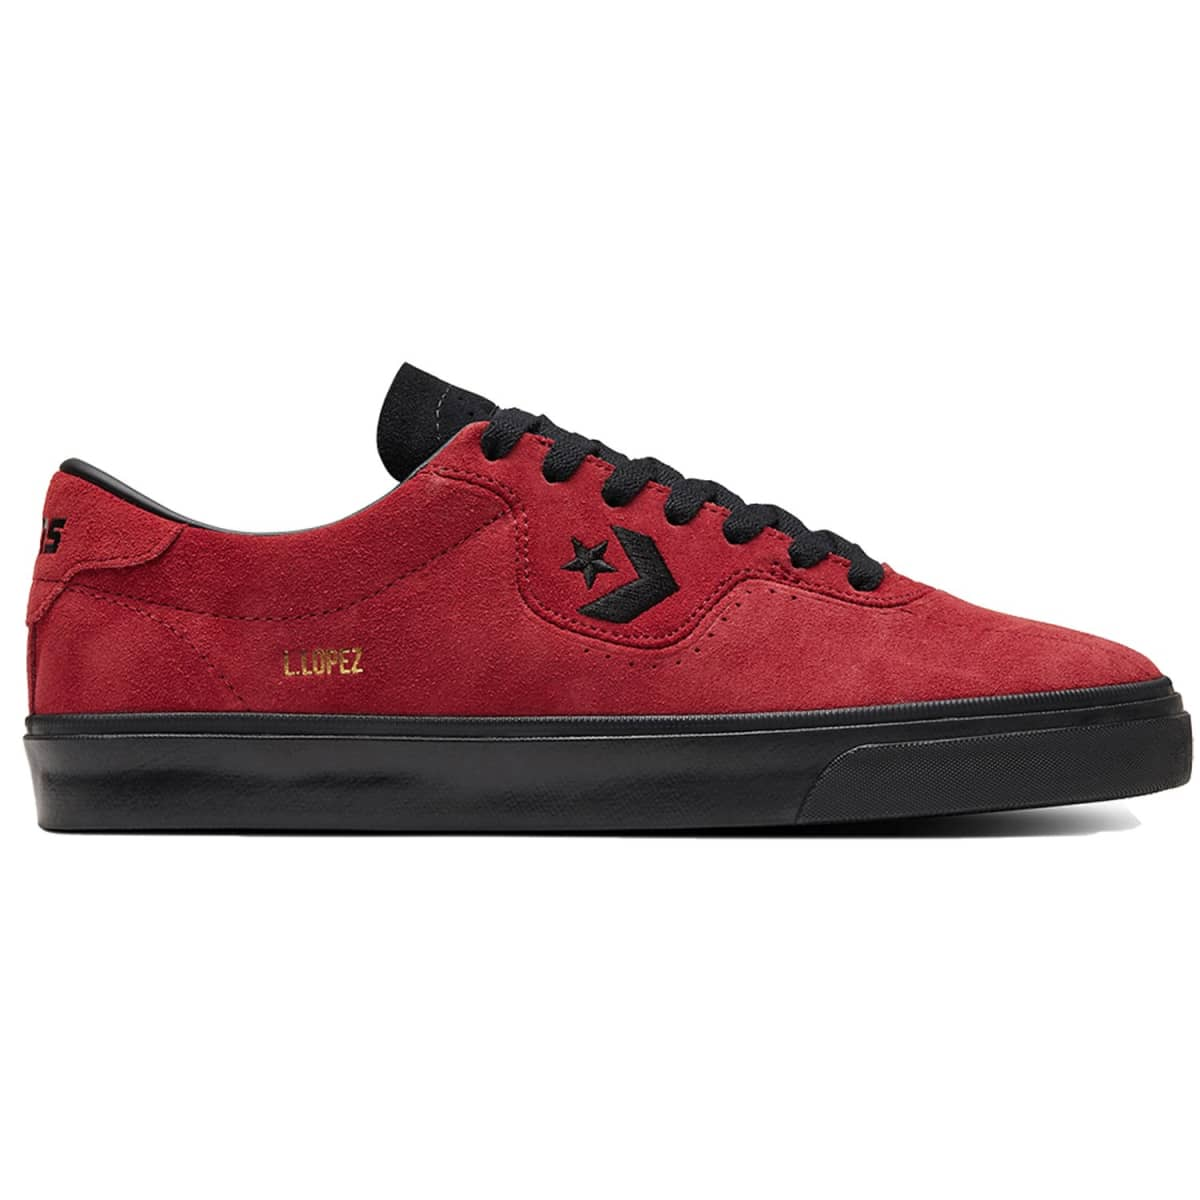 Converse Louie Lopez Pro OX - (Back Alley Brick/Black/Black)